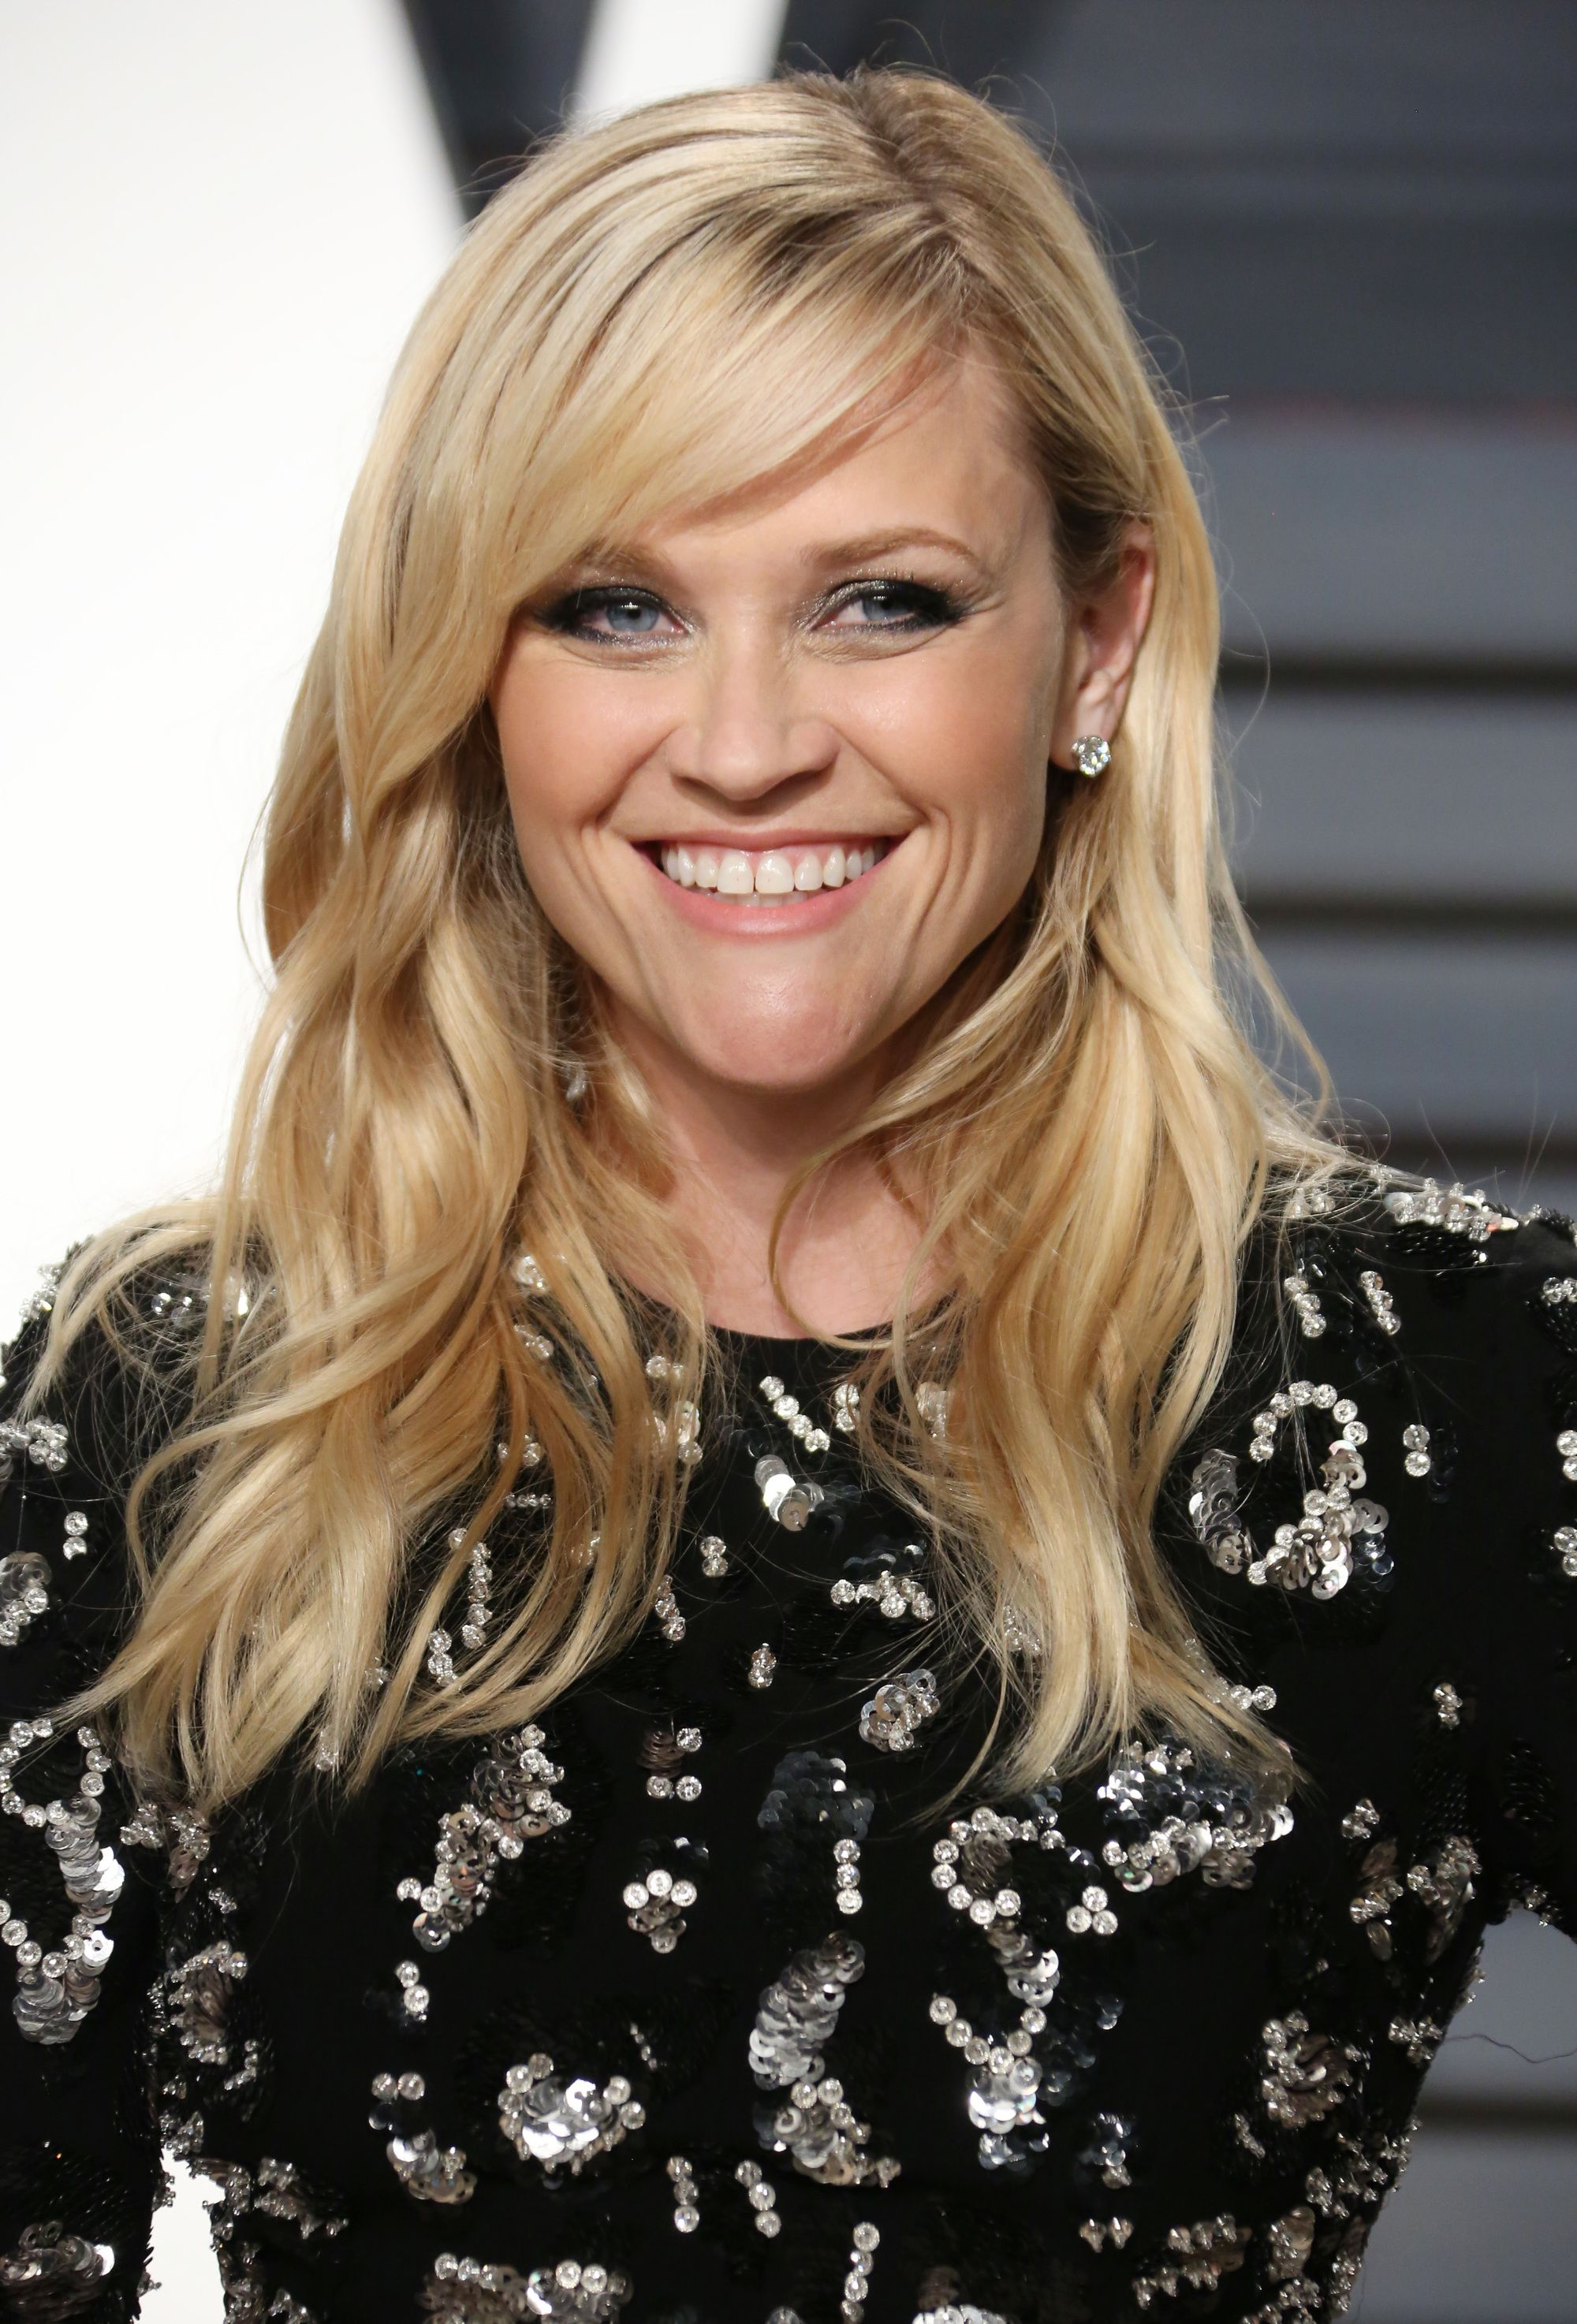 actress reese witherspoon with blonde side bangs and curly hair